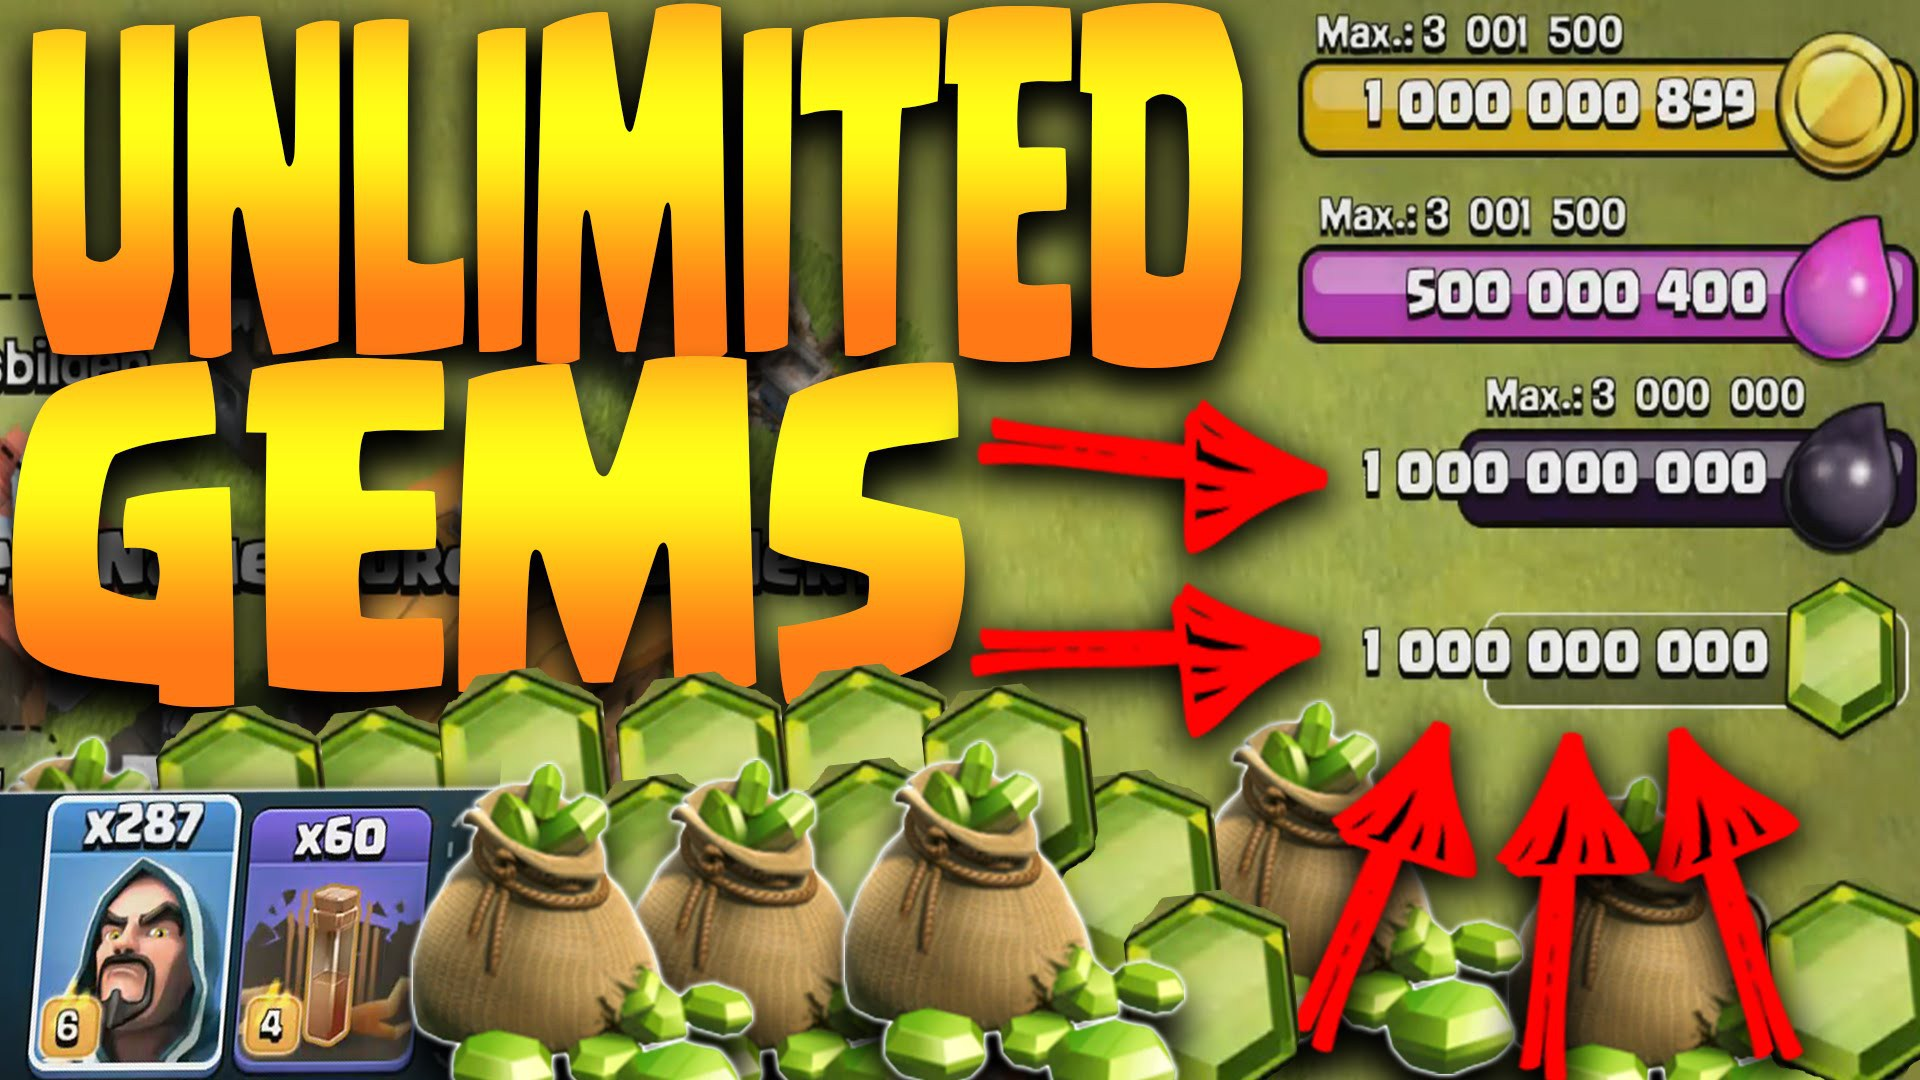 android 1 clash of clans unlimited gems apk